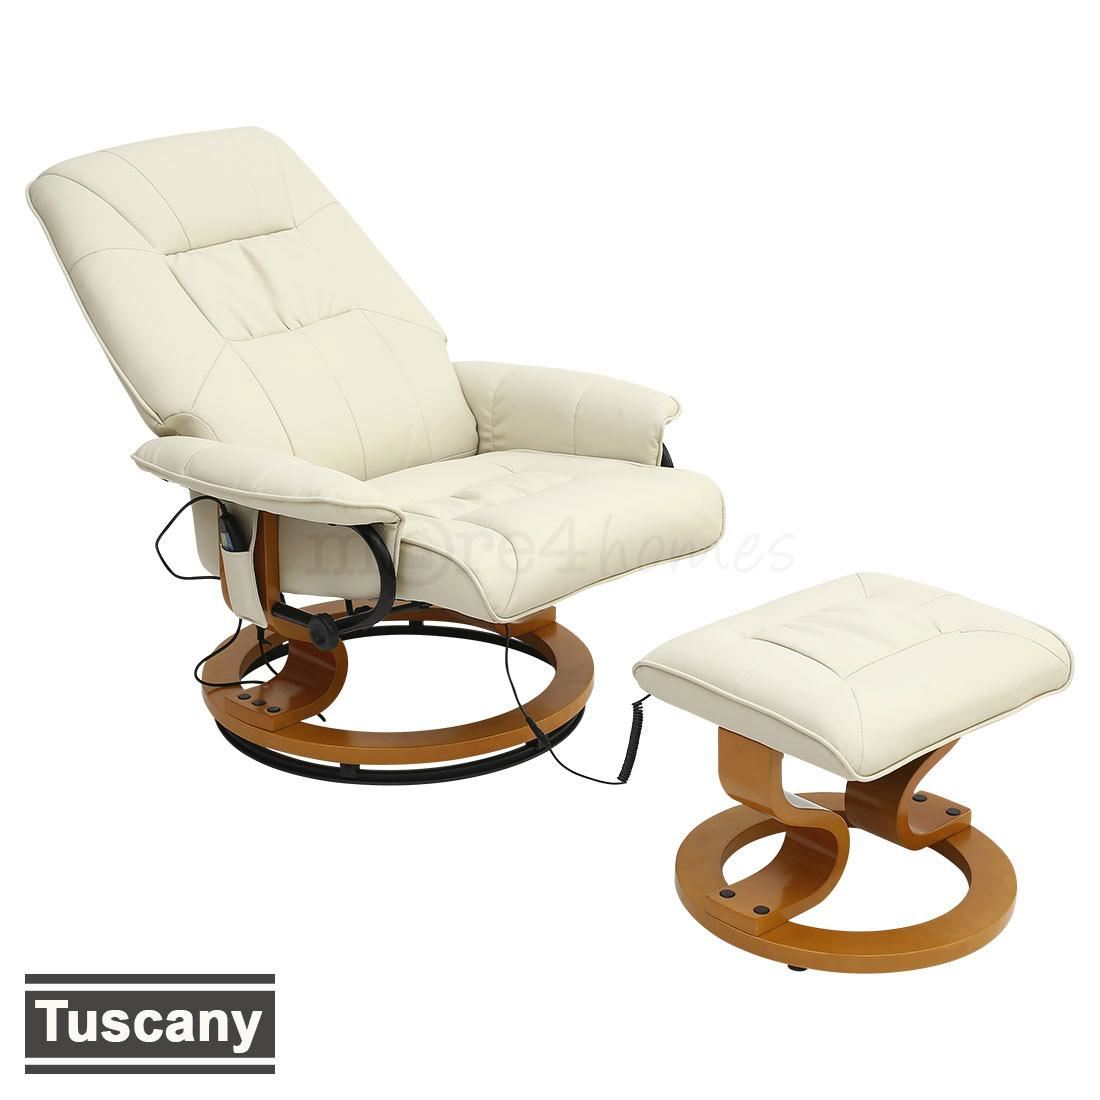 real leather cream swivel recliner massage chair w foot stool armchair